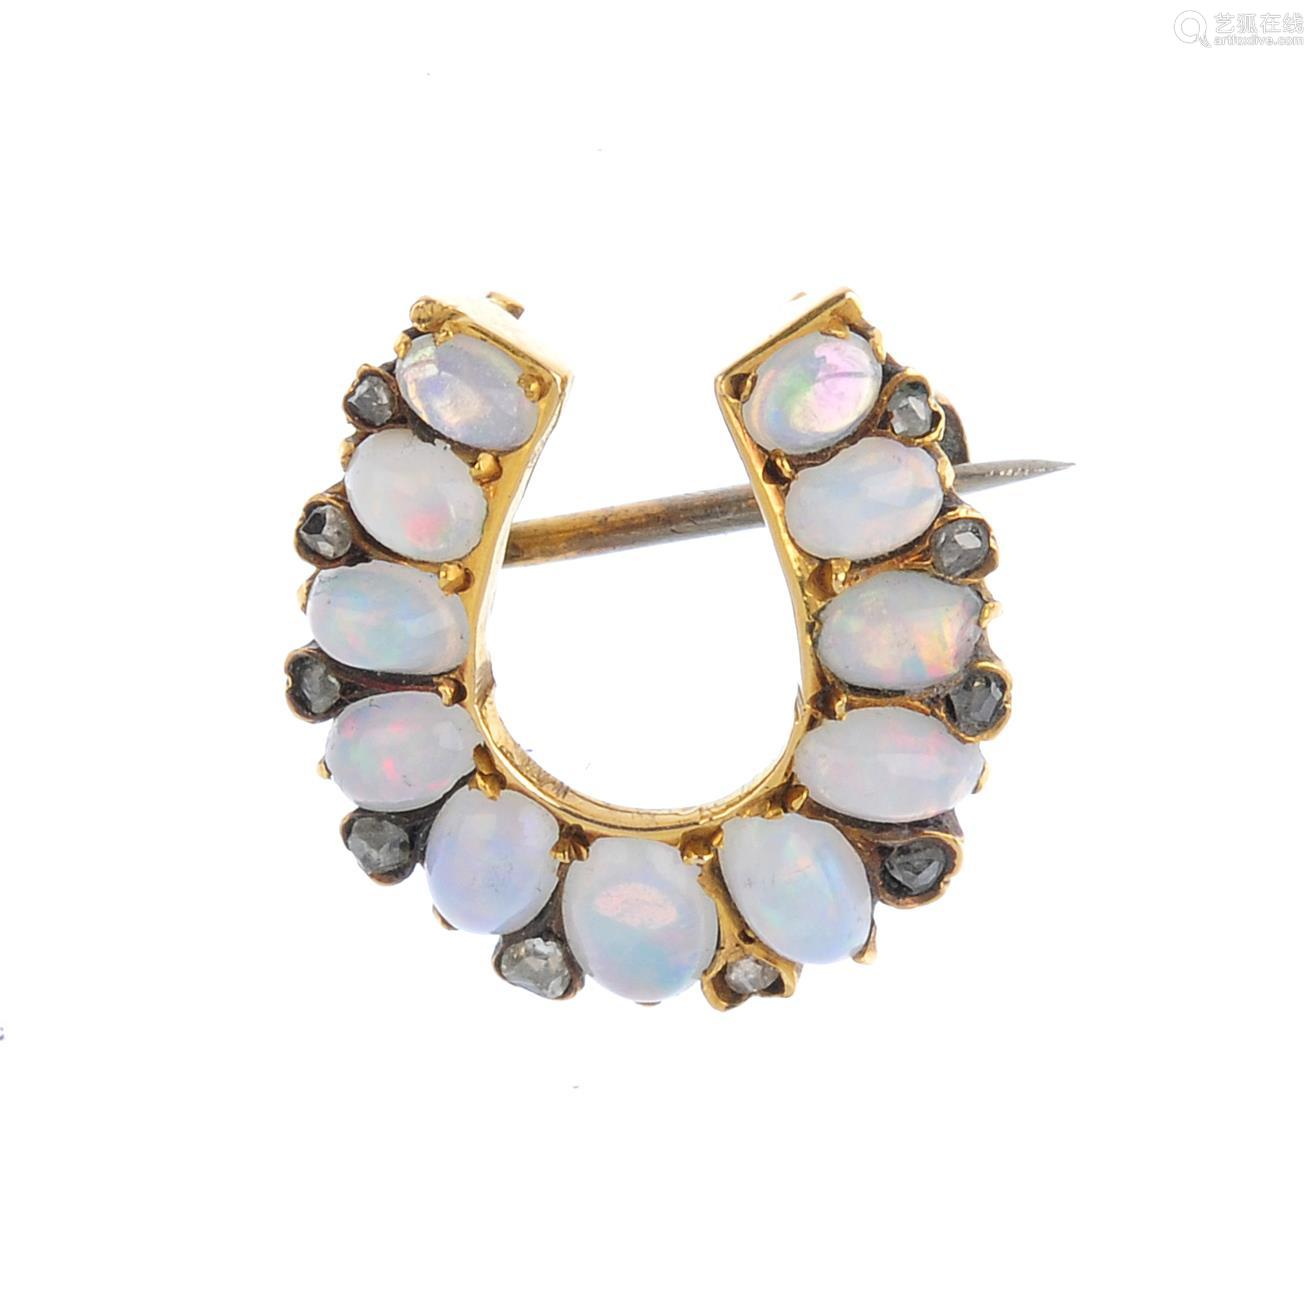 A late Victorian 15ct gold, opal and diamond horseshoe brooch. The graduated oval opal cabochon